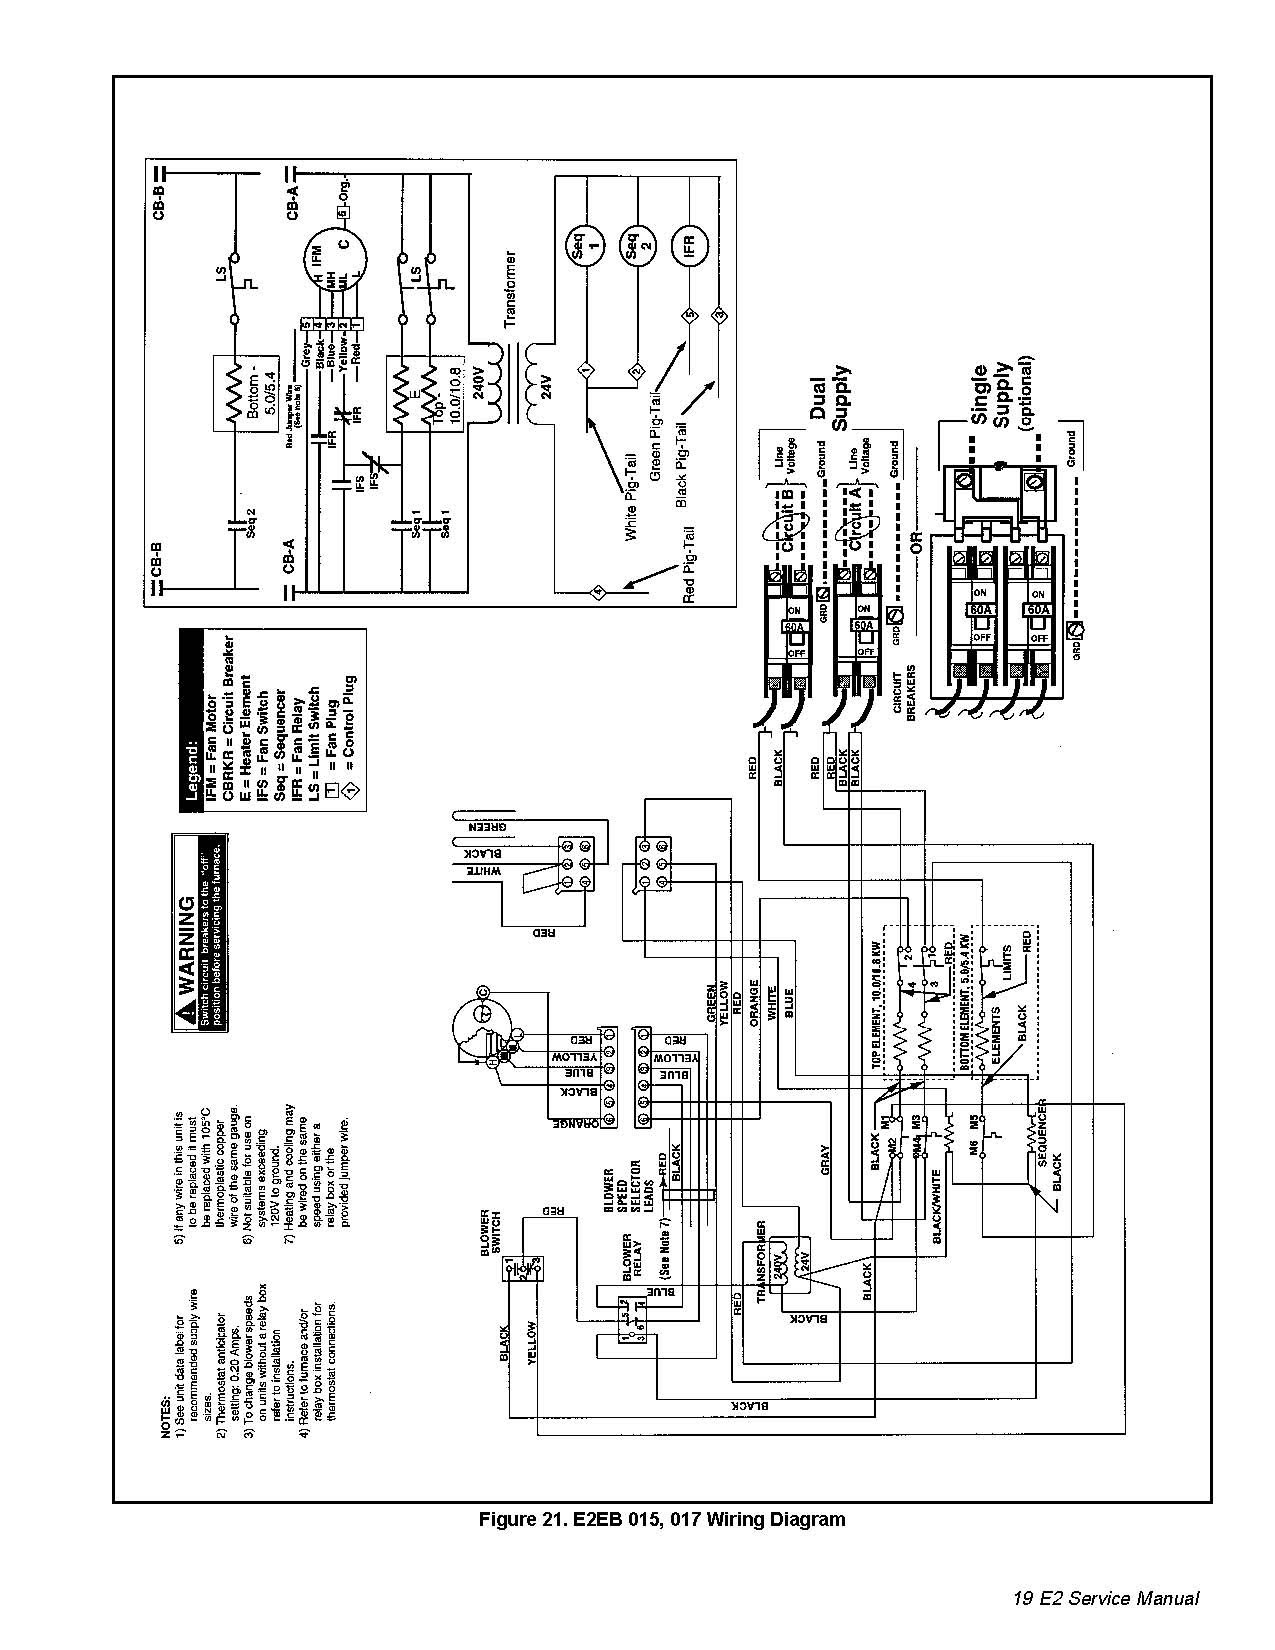 Intertherm Electric Furnace Wiring Diagram New Circuit 2010 06 18 nordyne Electric Page 19 Intertherm Furnace